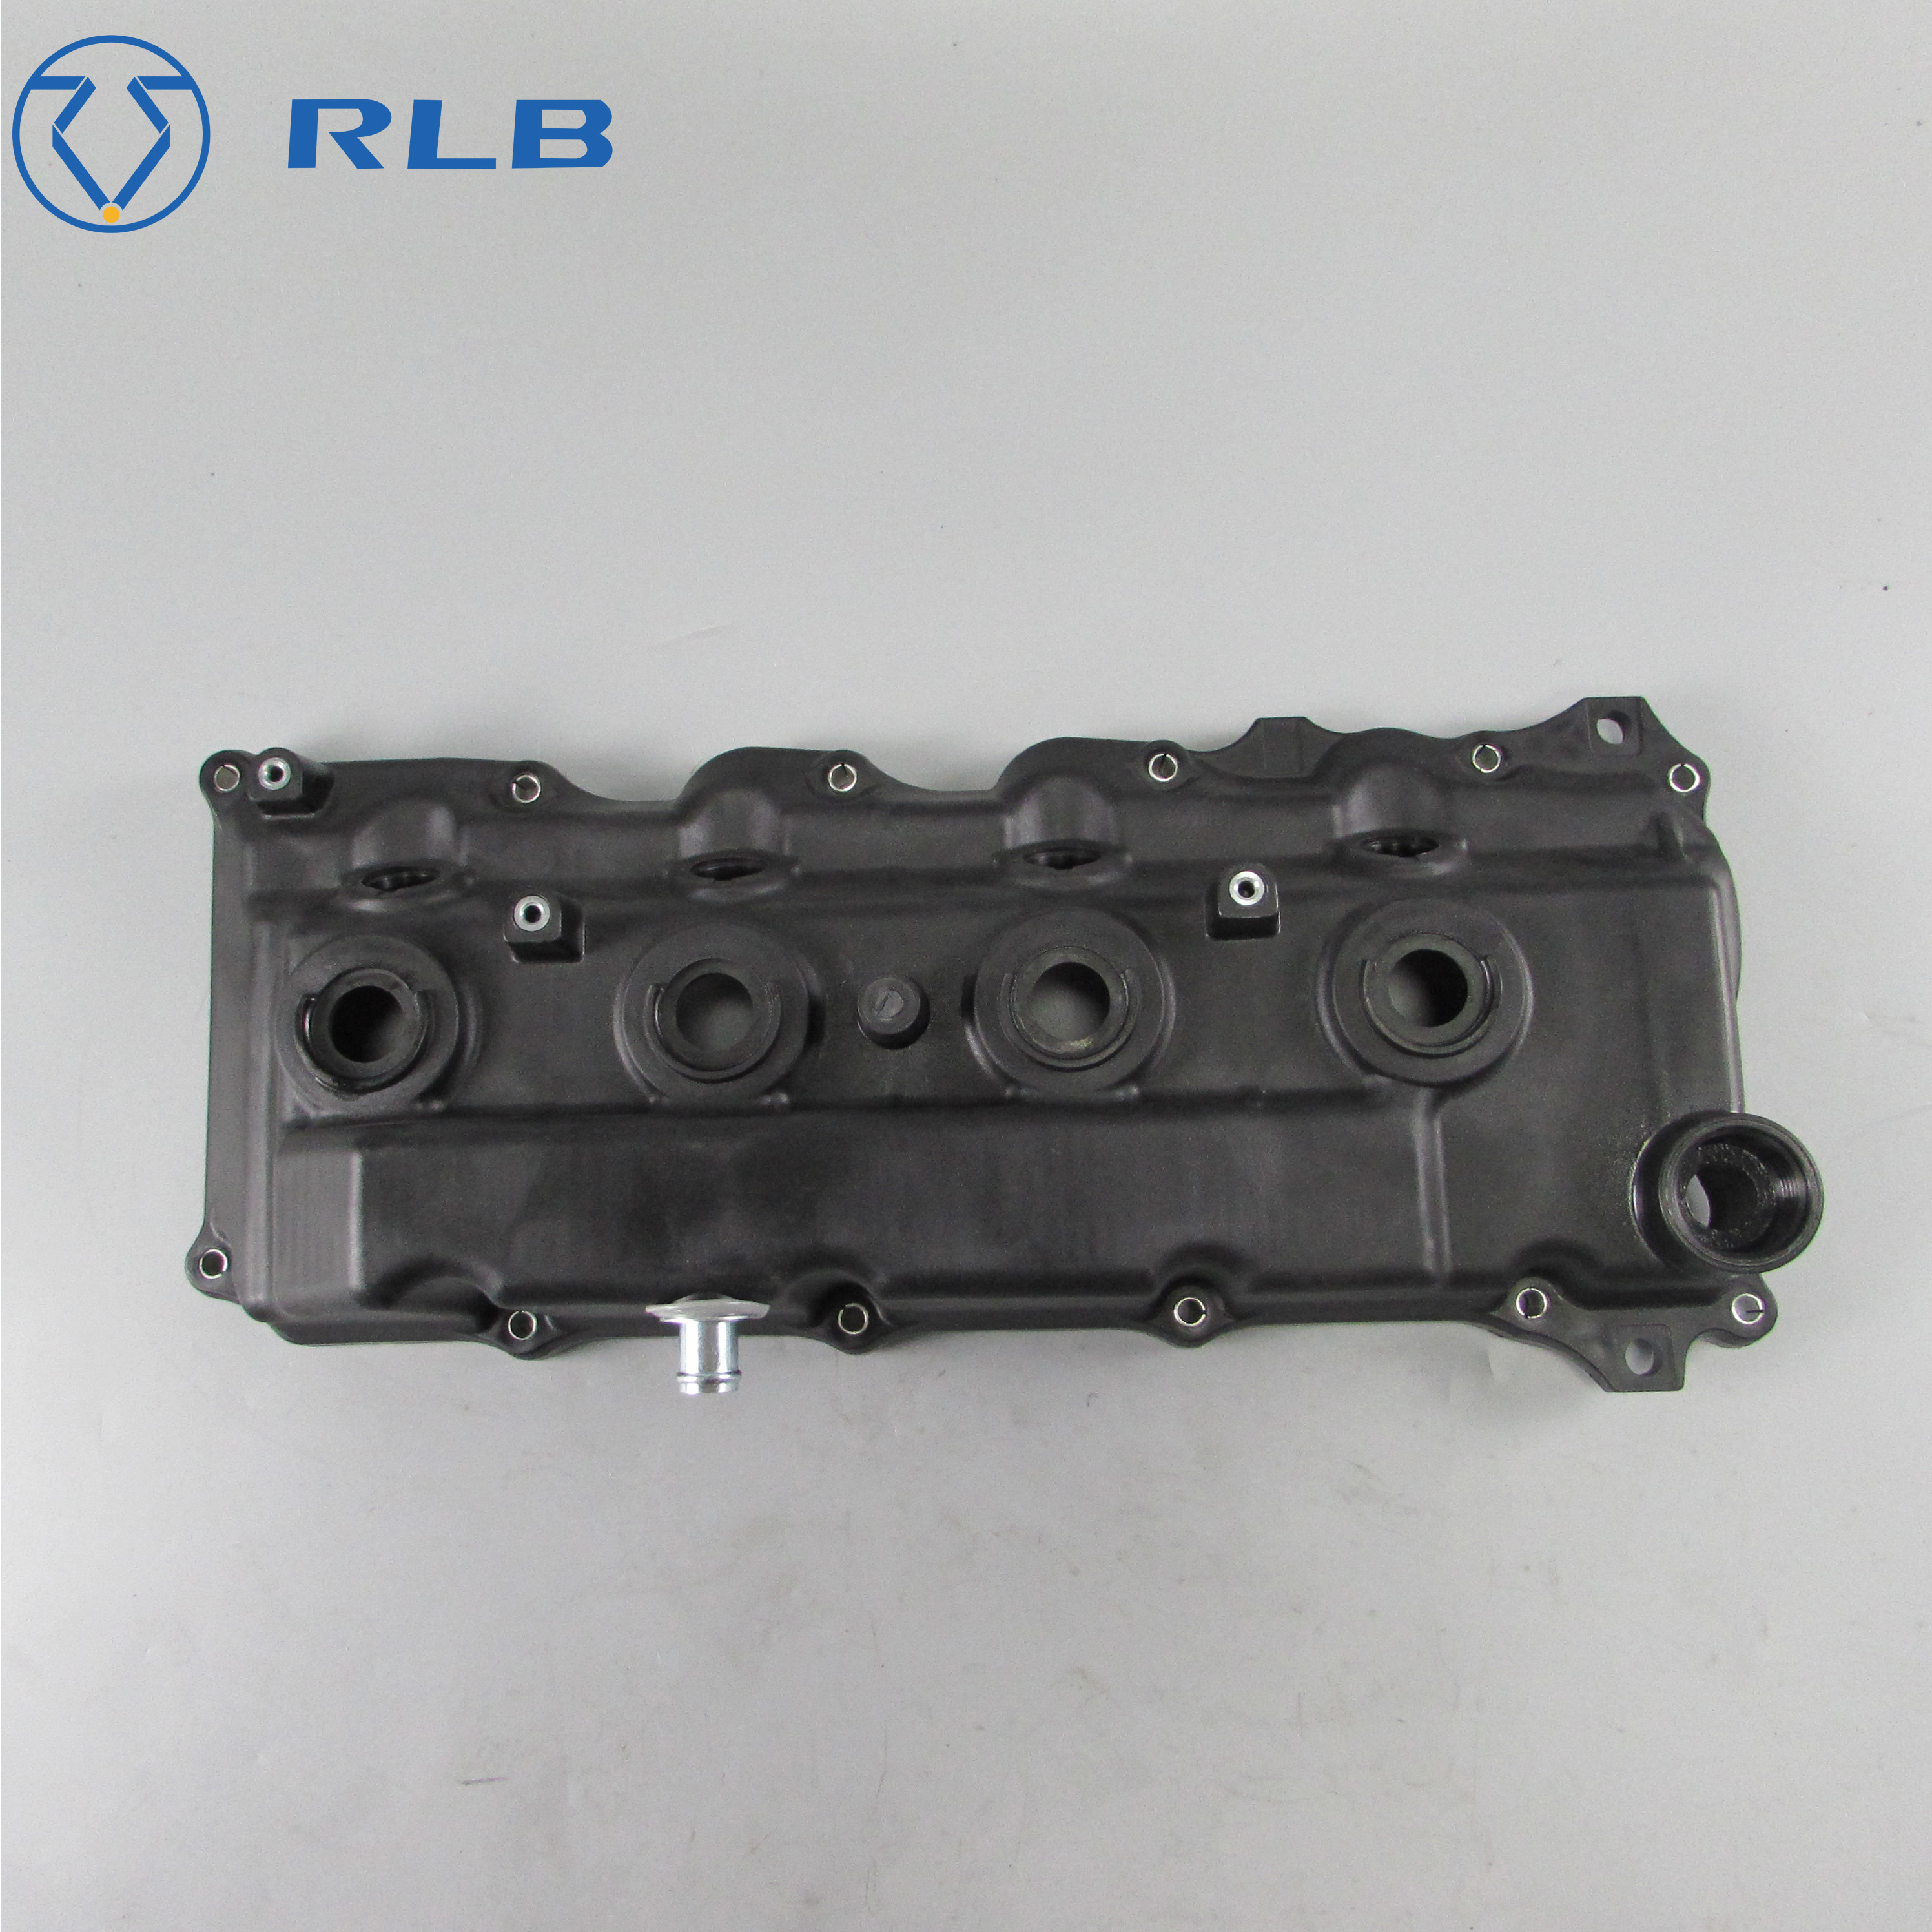 11210 0L020 for Toyota hilux fortuner innova 1KD 2KD Cover sub assy  cylinder head 112100L020|Cylinder Body & Parts| |  - title=